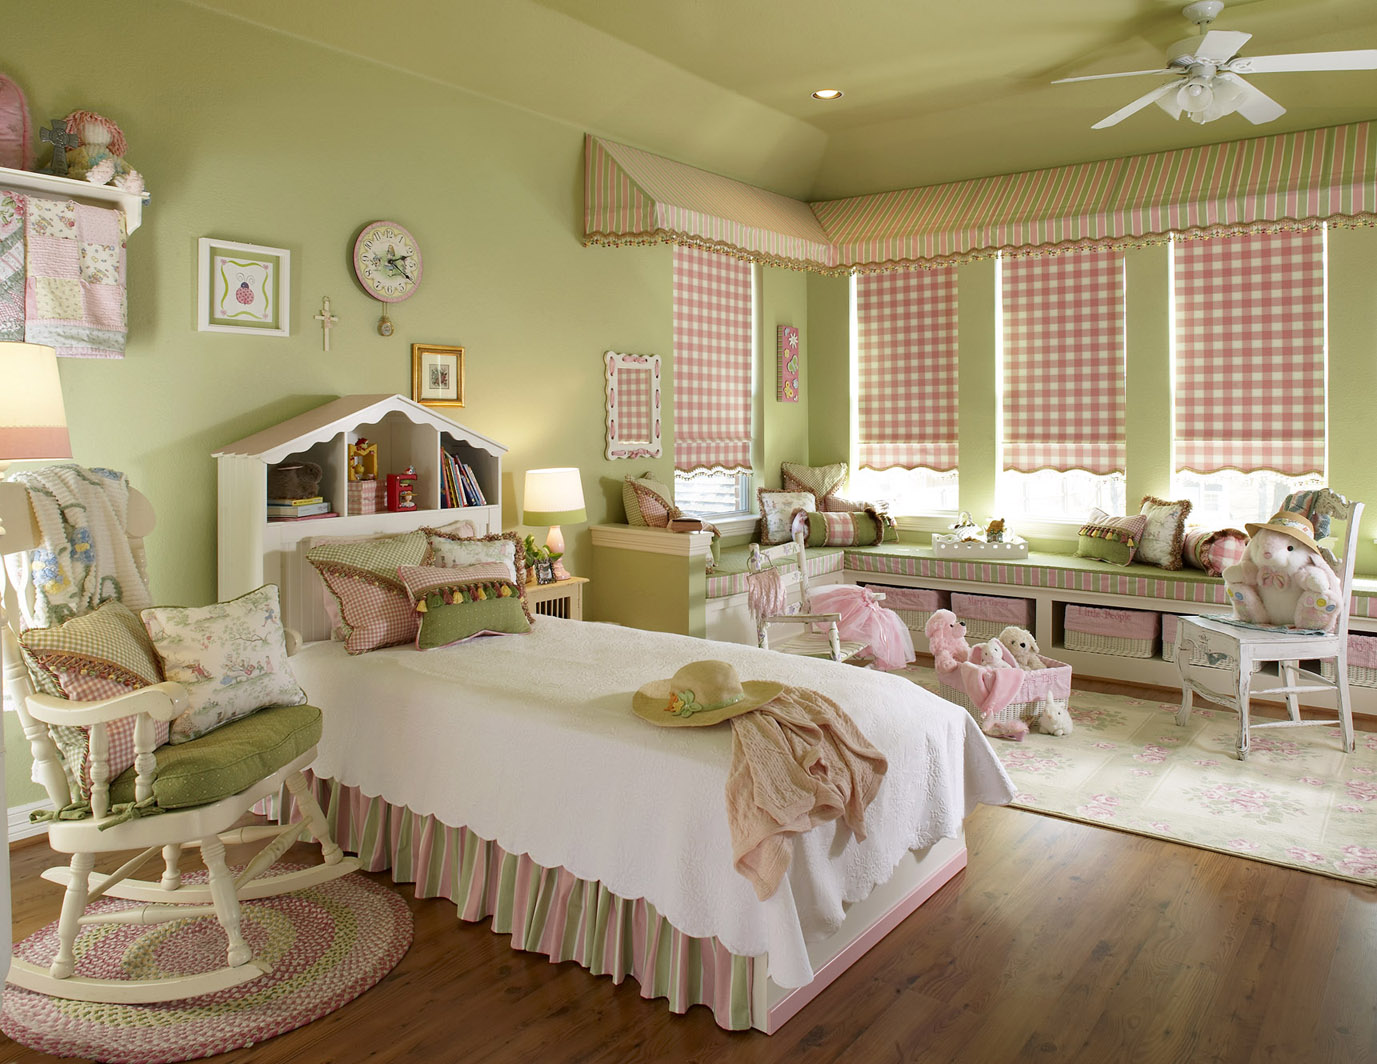 Kids playroom canopy - This Soft Color Palette Is Calming And Pleasing To The Eye In This Wonderful Girl S Room A Canopy Valance Calls Attention To These Unique Corner Windows